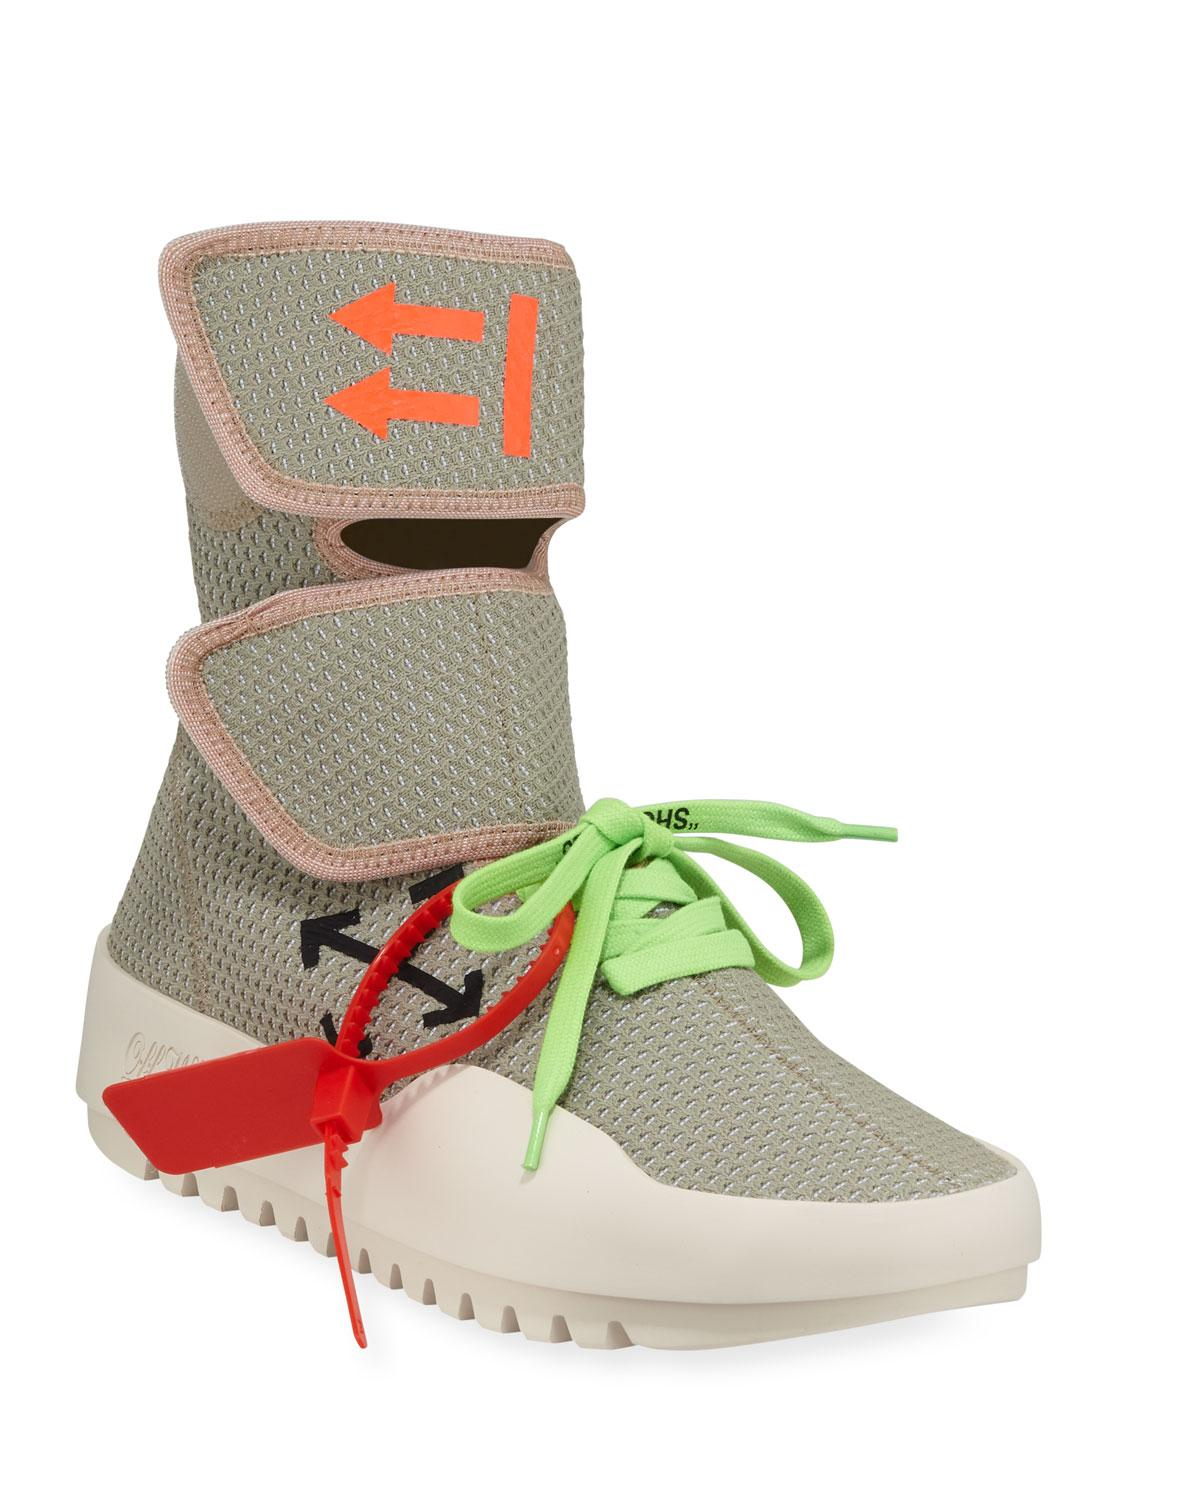 9a33f9c3408f95 Off-White c/o Virgil Abloh. Gray Men's Moto Wrap High-top Knit Sneakers